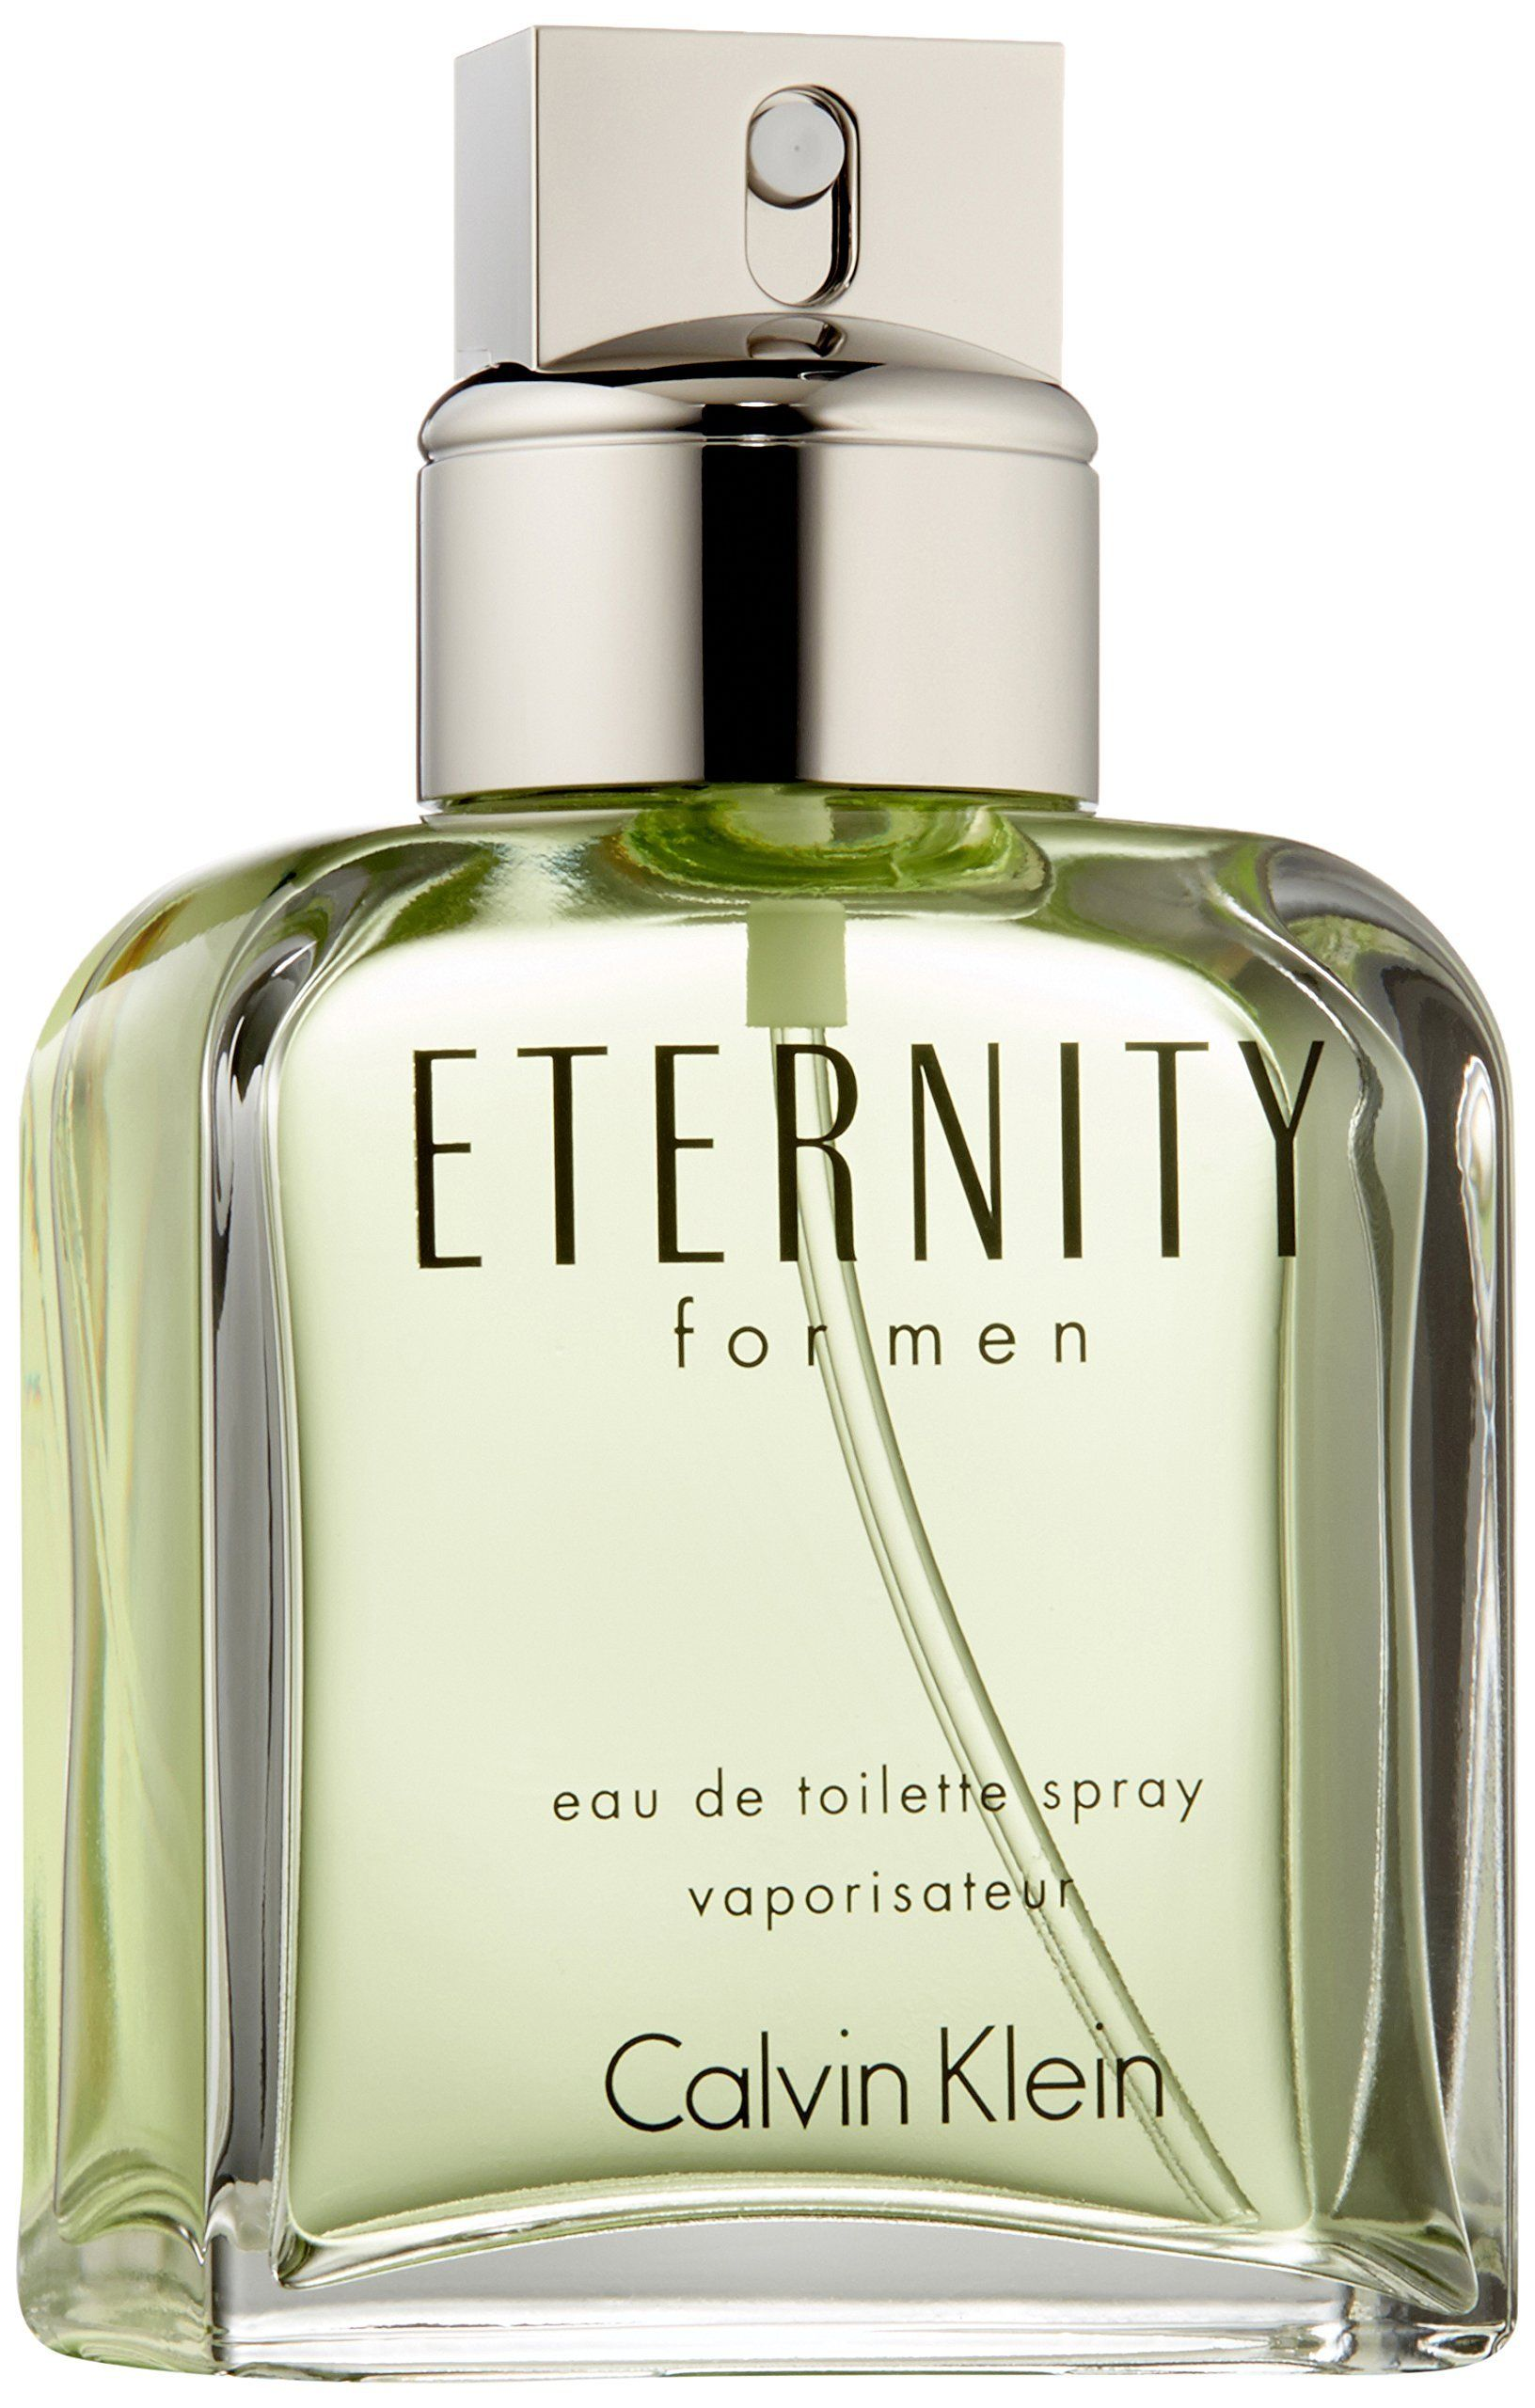 Calvin Klein Eternity For Men Eau De Toilette 3 4 Fl Oz Men Perfume Perfume Eau De Toilette